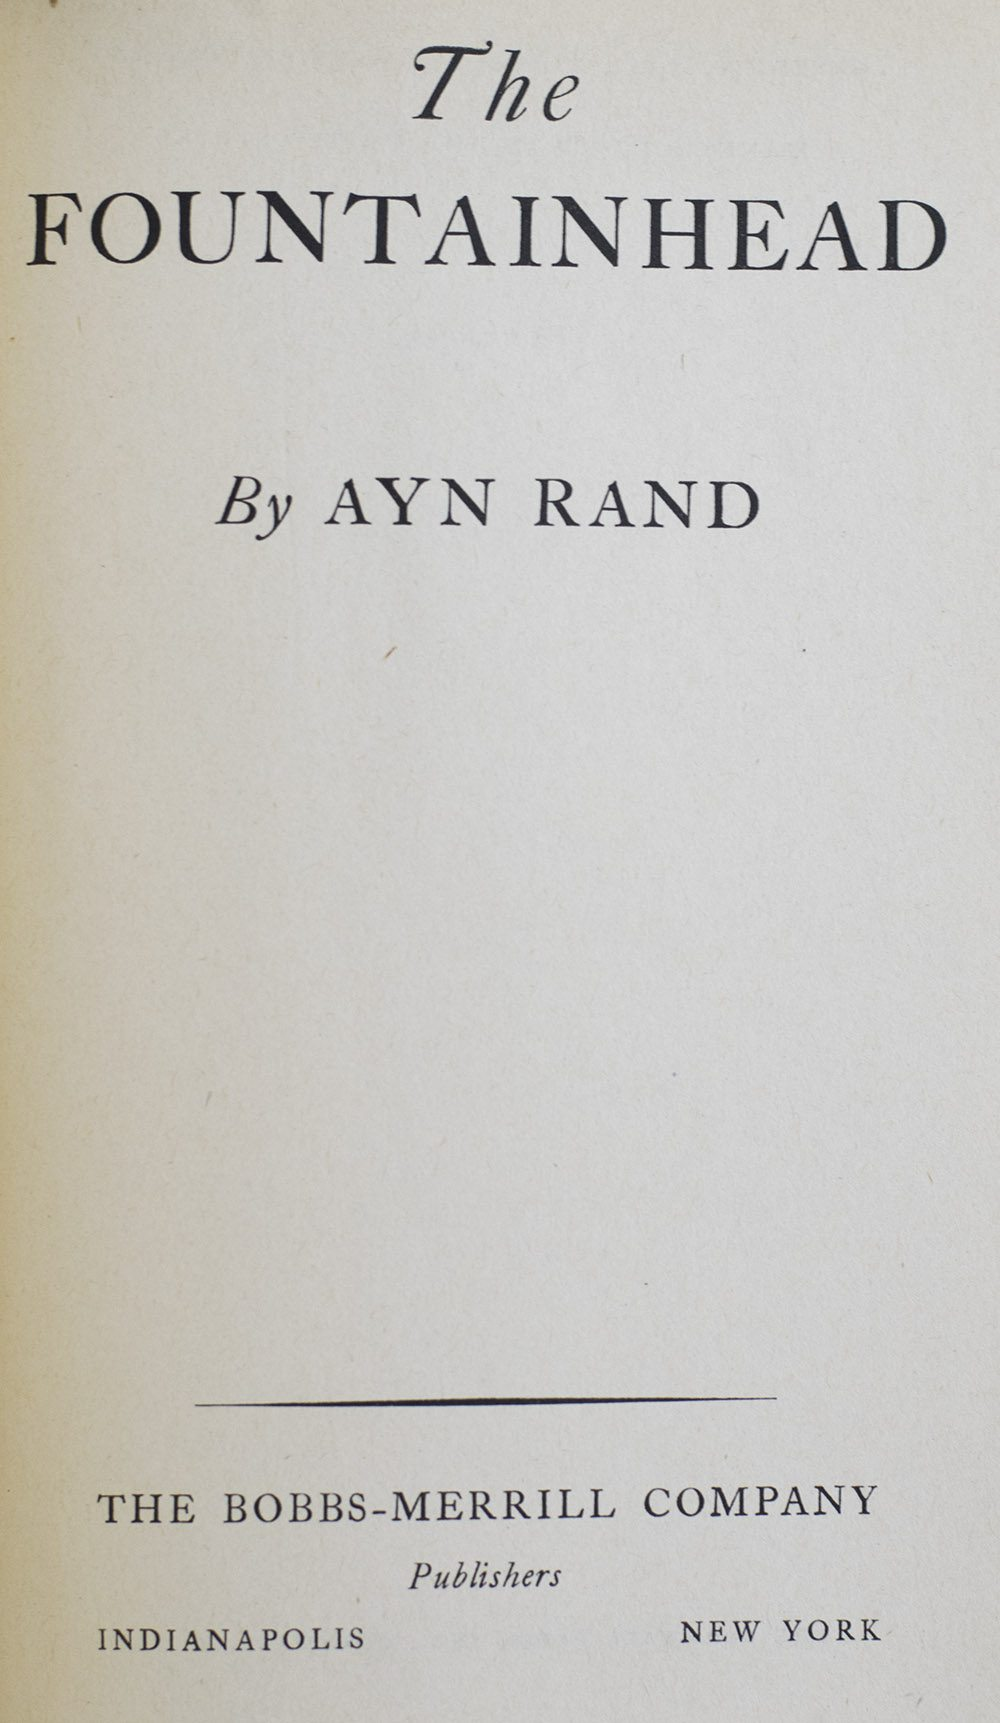 ayn rand institute atlas shrugged essay contest See who you know at ayn rand institute, leverage your professional network,  and  who is best known for her novels the fountainhead and atlas shrugged.